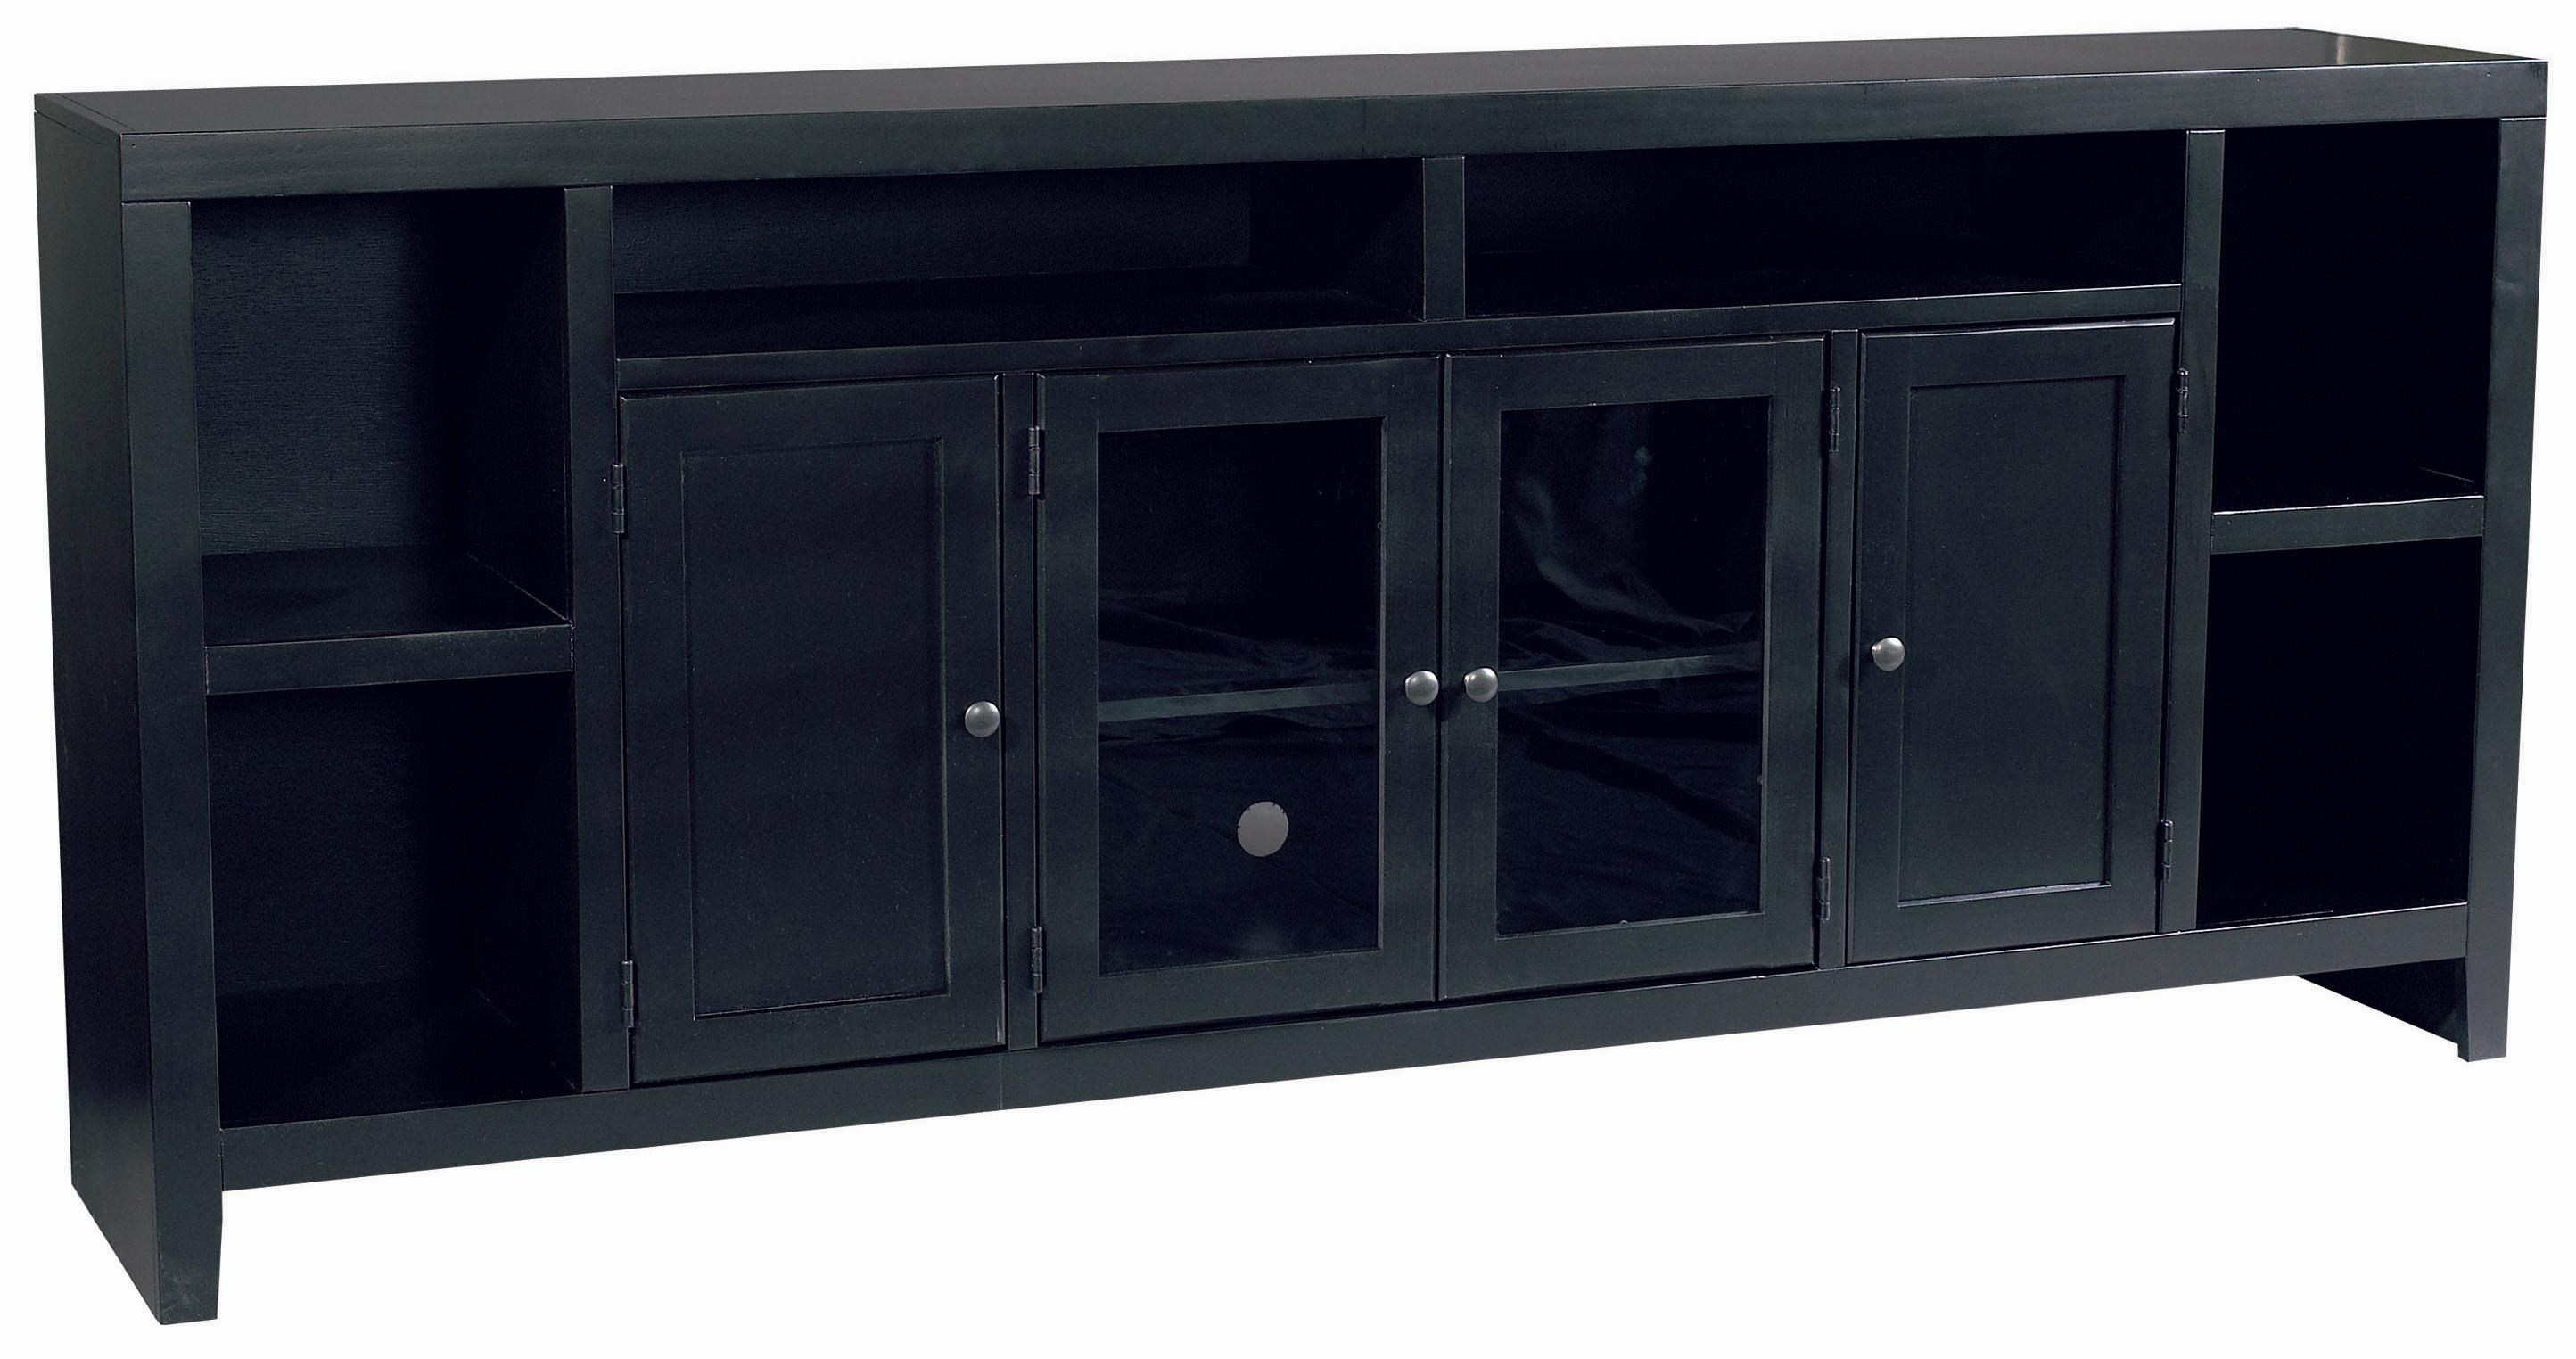 Aspenhome Essentials Lifestyle 84 Inch Console : Hudsonu0026#39;s Furniture : TV Stands Tampa, St ...